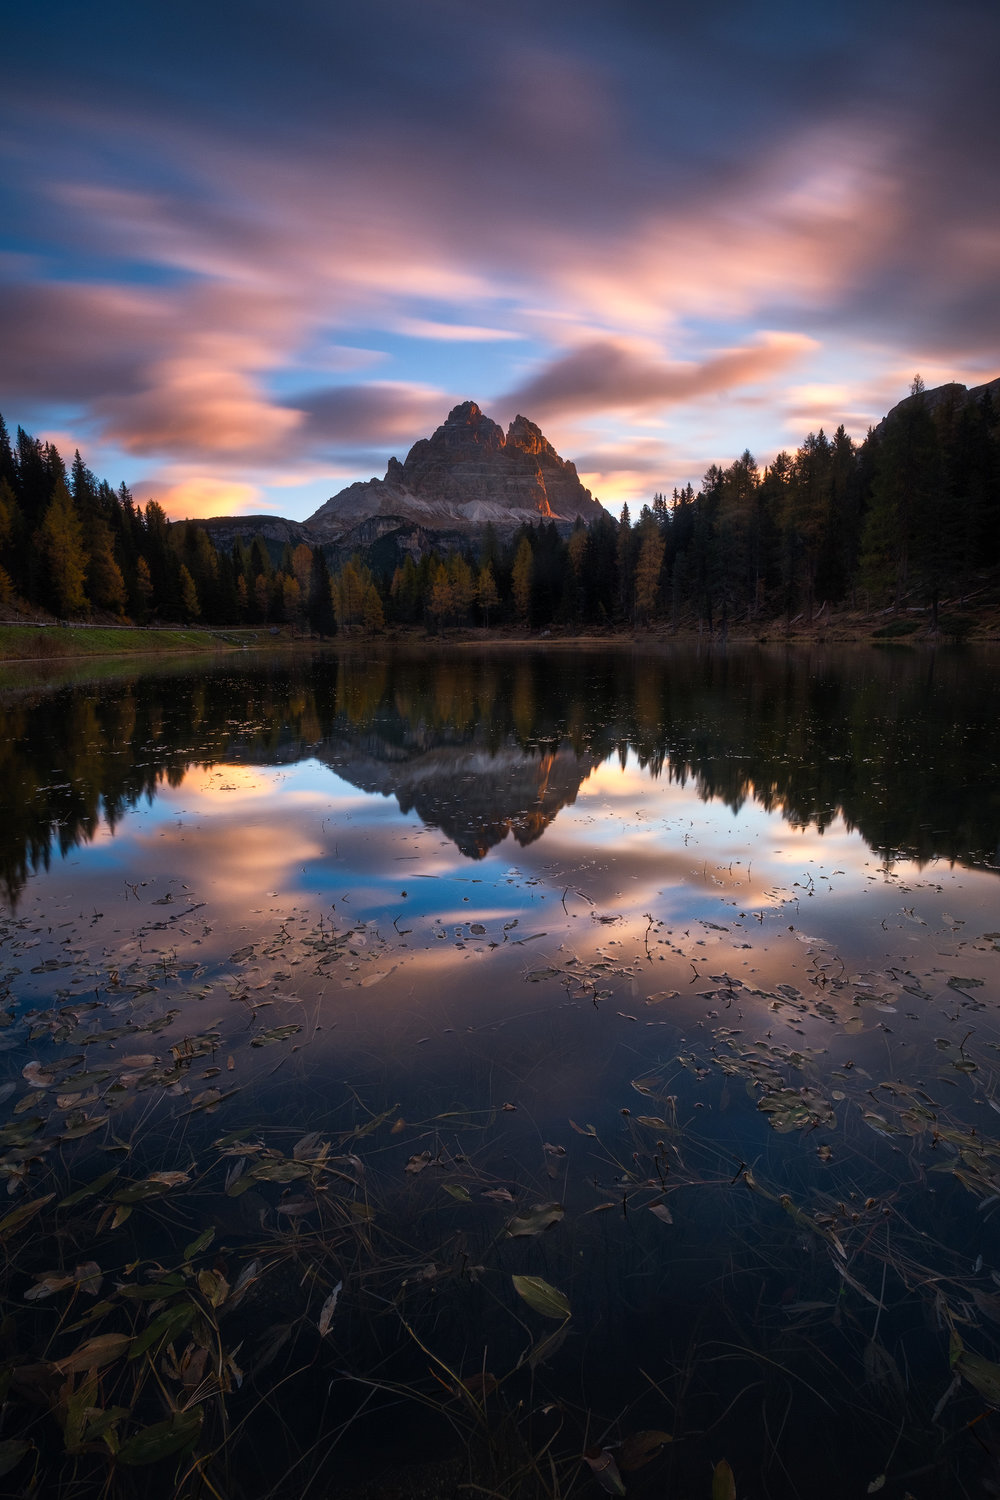 Tre Cime Sunrise The sun's first rays paint the peaks of Tre Cime di Lavaredo reflected in the still waters of Lago Antorno in the Dolomite mountains.